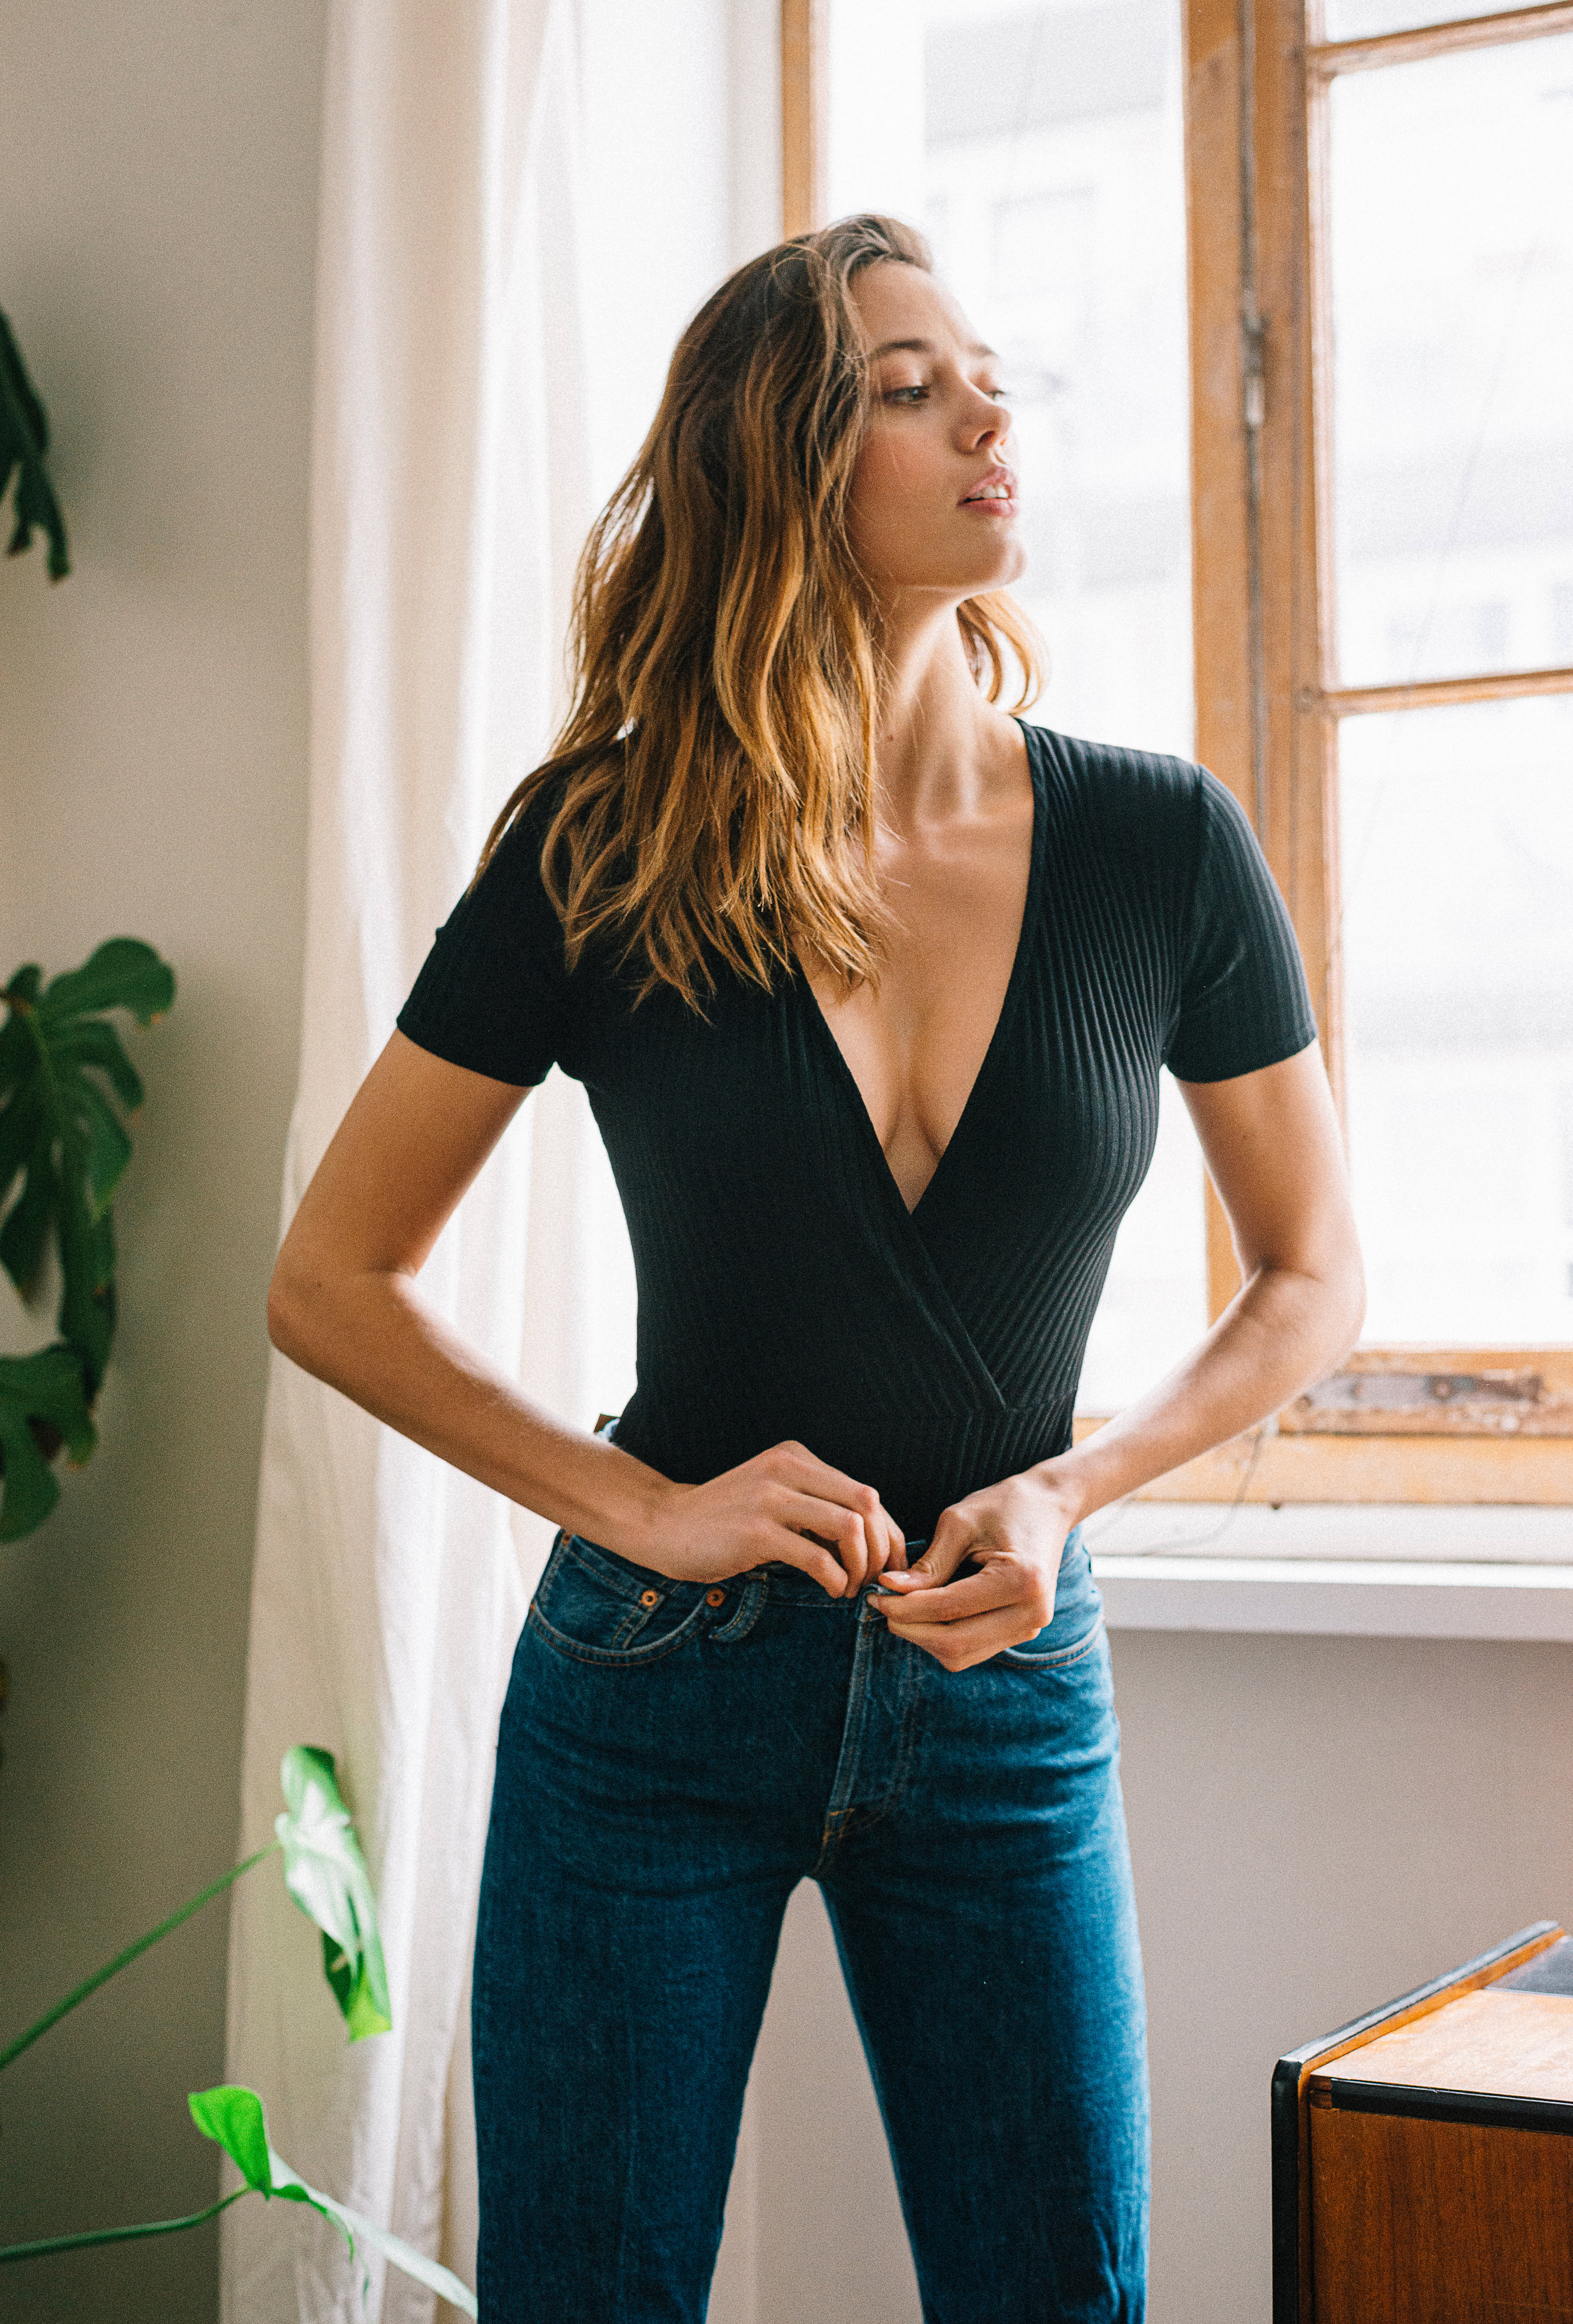 Bodysuit gaia in black worn with a pair of jeans